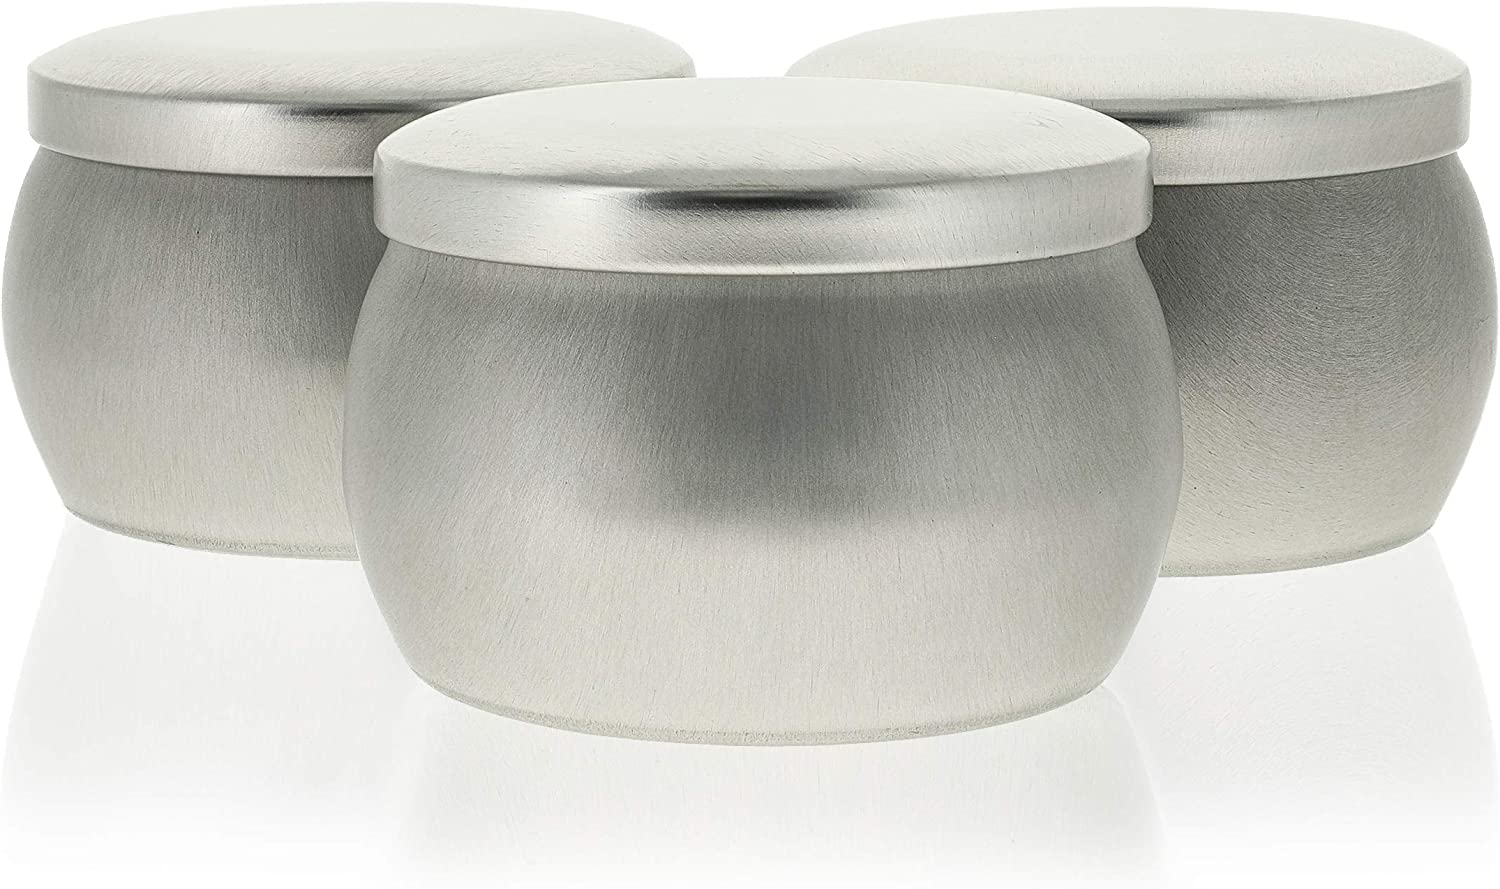 Candle Tins for Making Candles, Tin Jars with Lids (Silver, 3 x 2 In, 24 Pack)